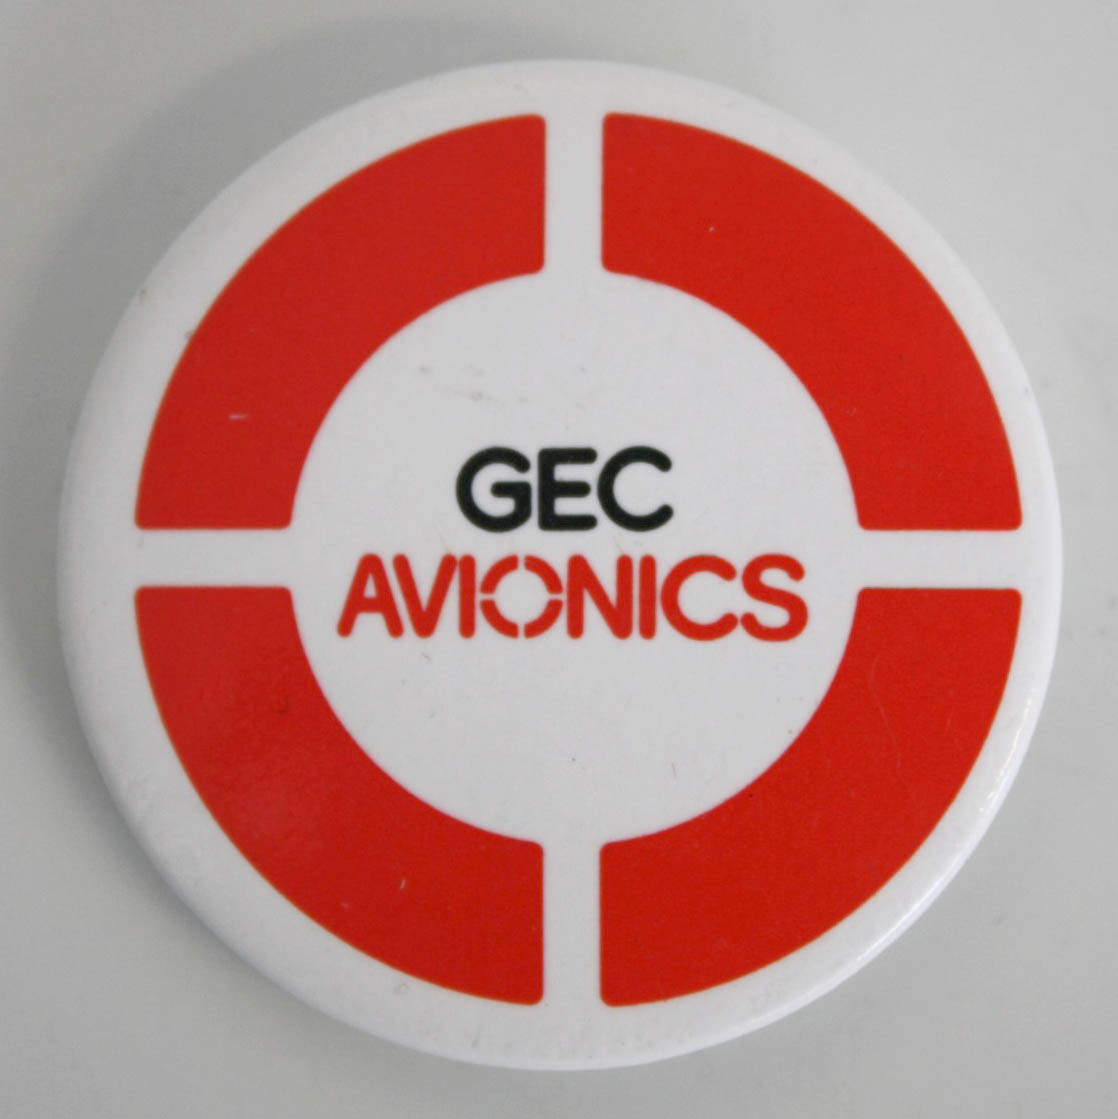 GEC Avionics Badges